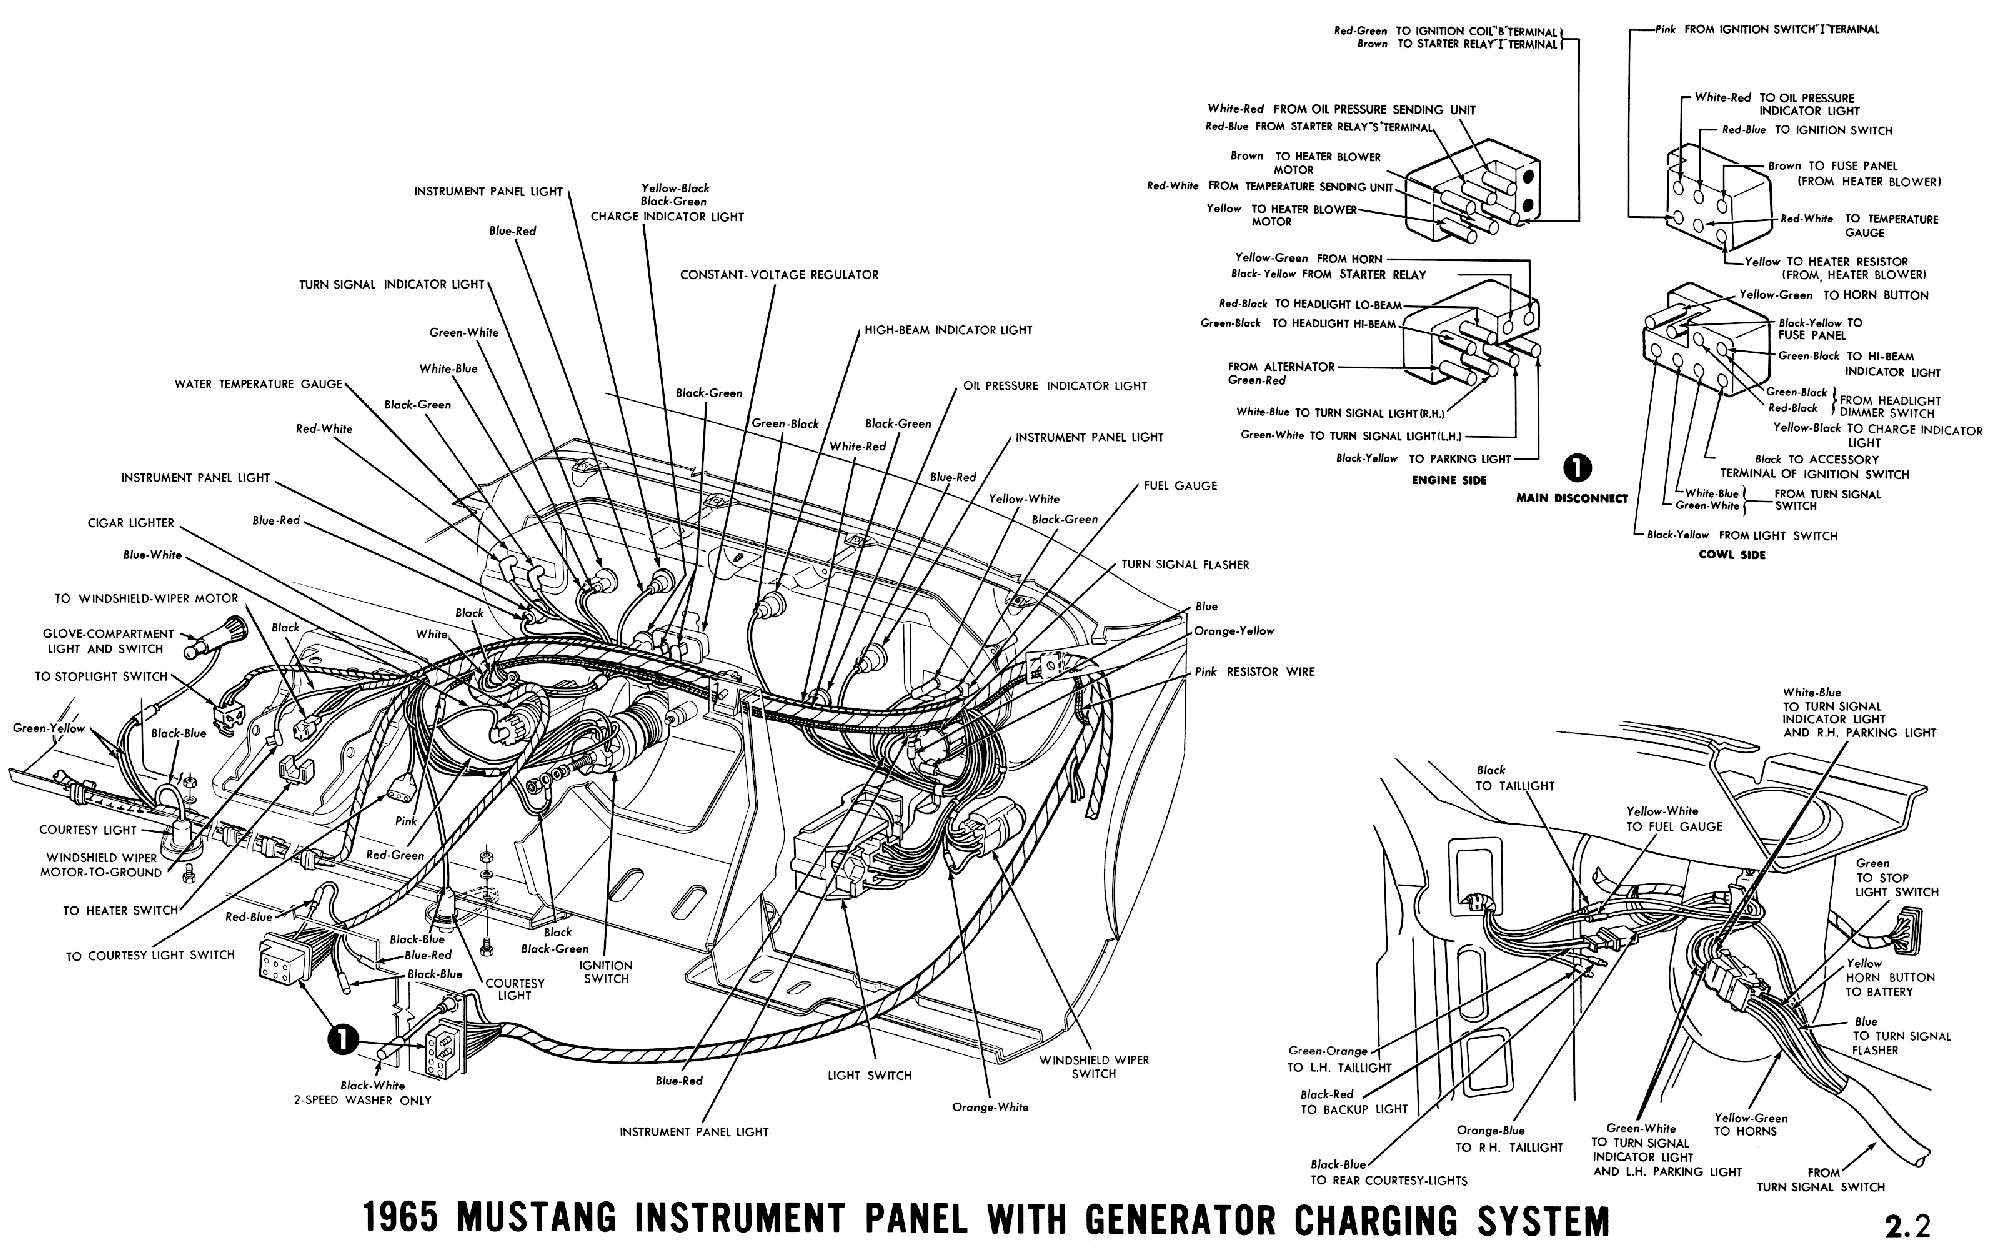 Wiring Diagram 2 Switches Harness 1965 Mustang Diagrams Average Joe Restoration Ford Included This Modified Version Of The 1964 1